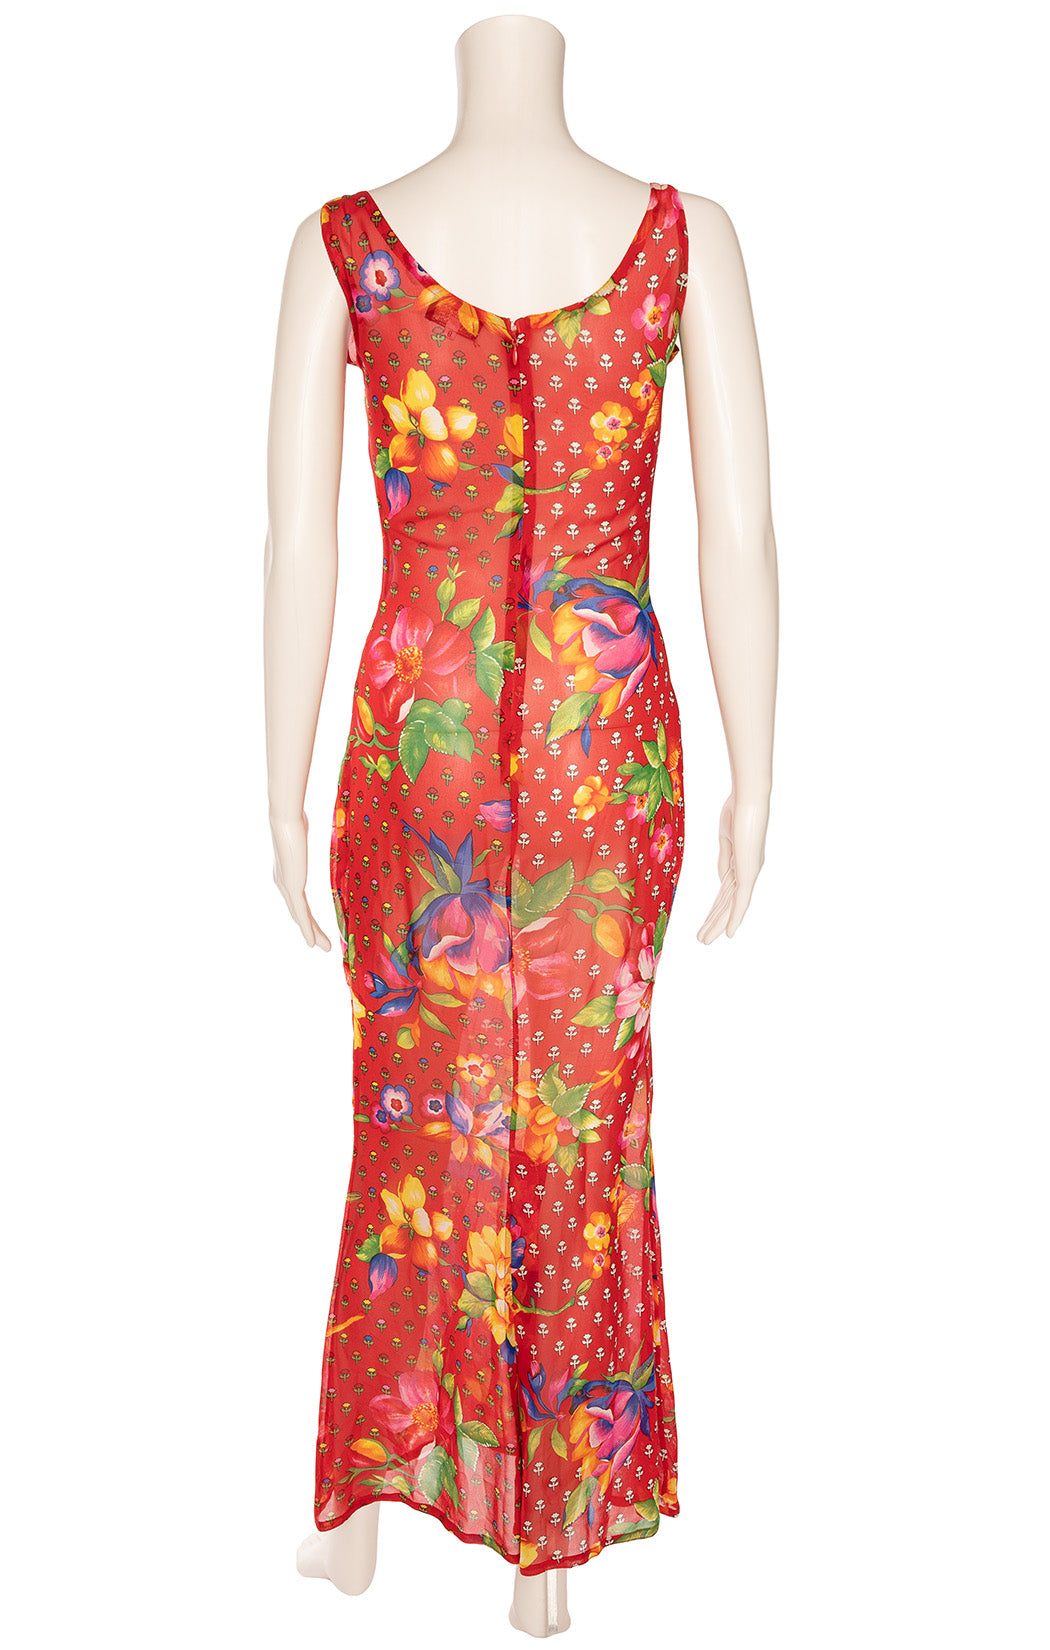 Red multi colored floral sleeveless print long dress with side slit and back zipper